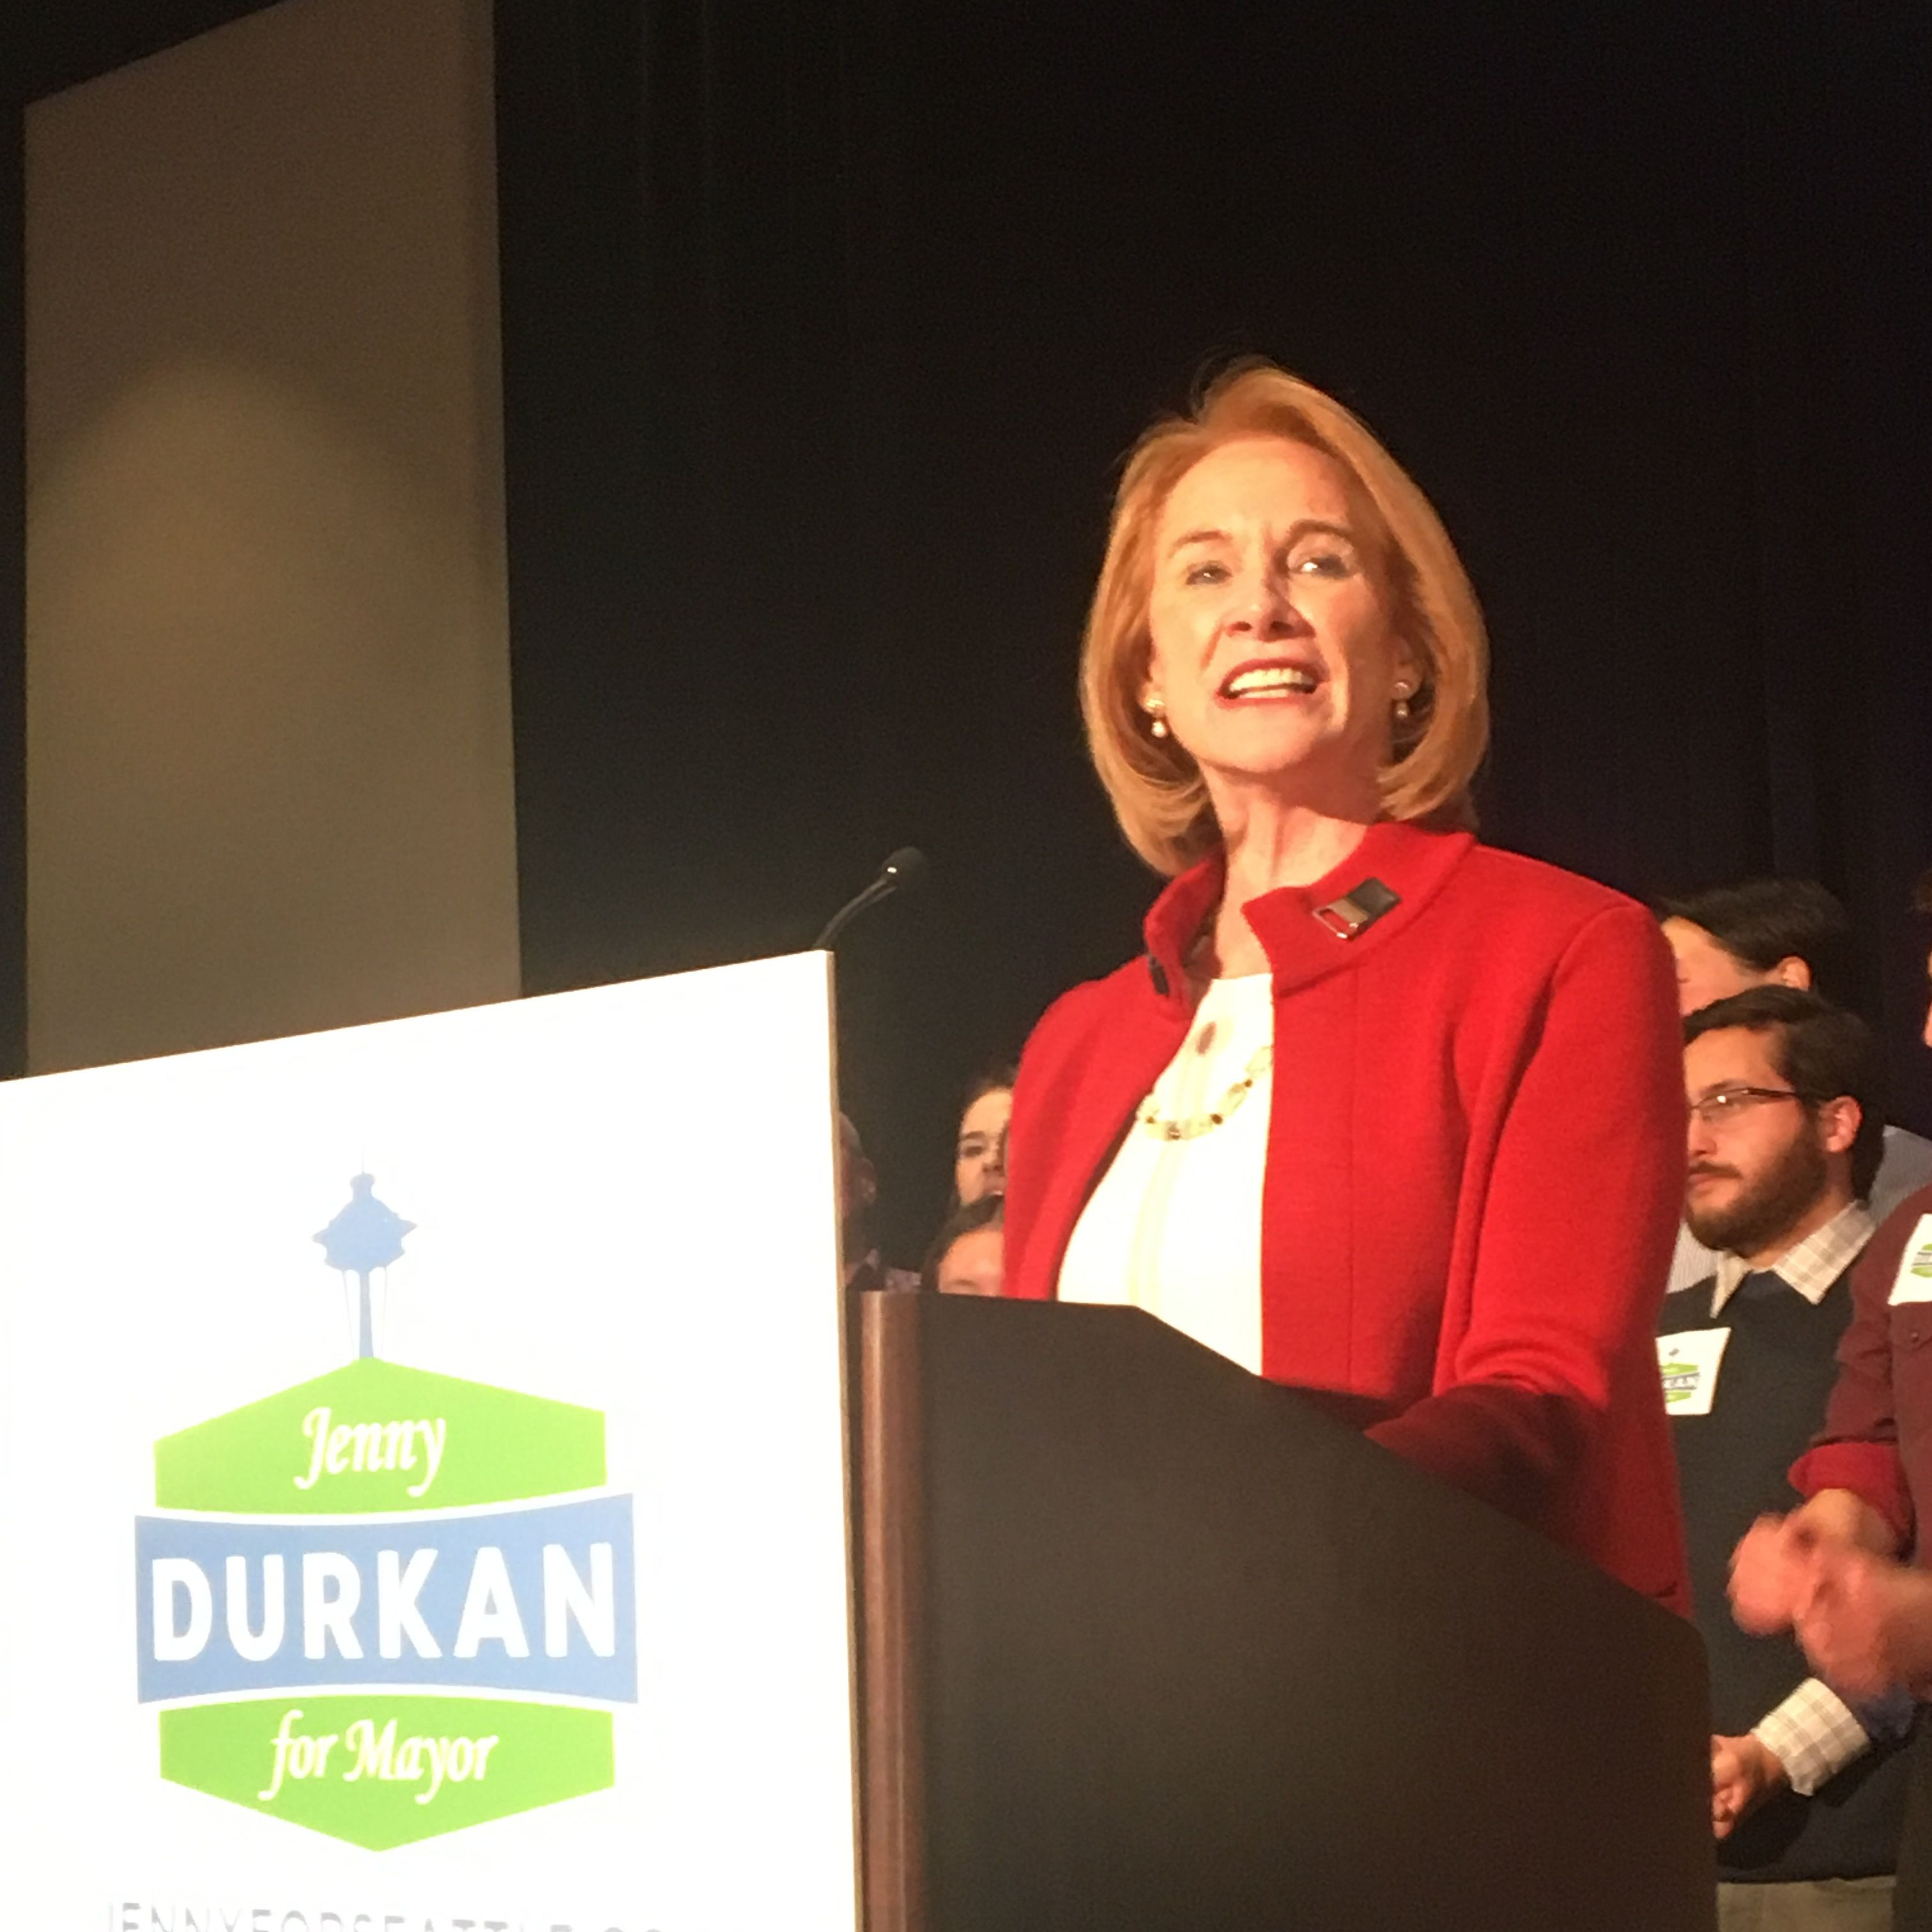 Jenny durkan general election night 110717 je1qkv